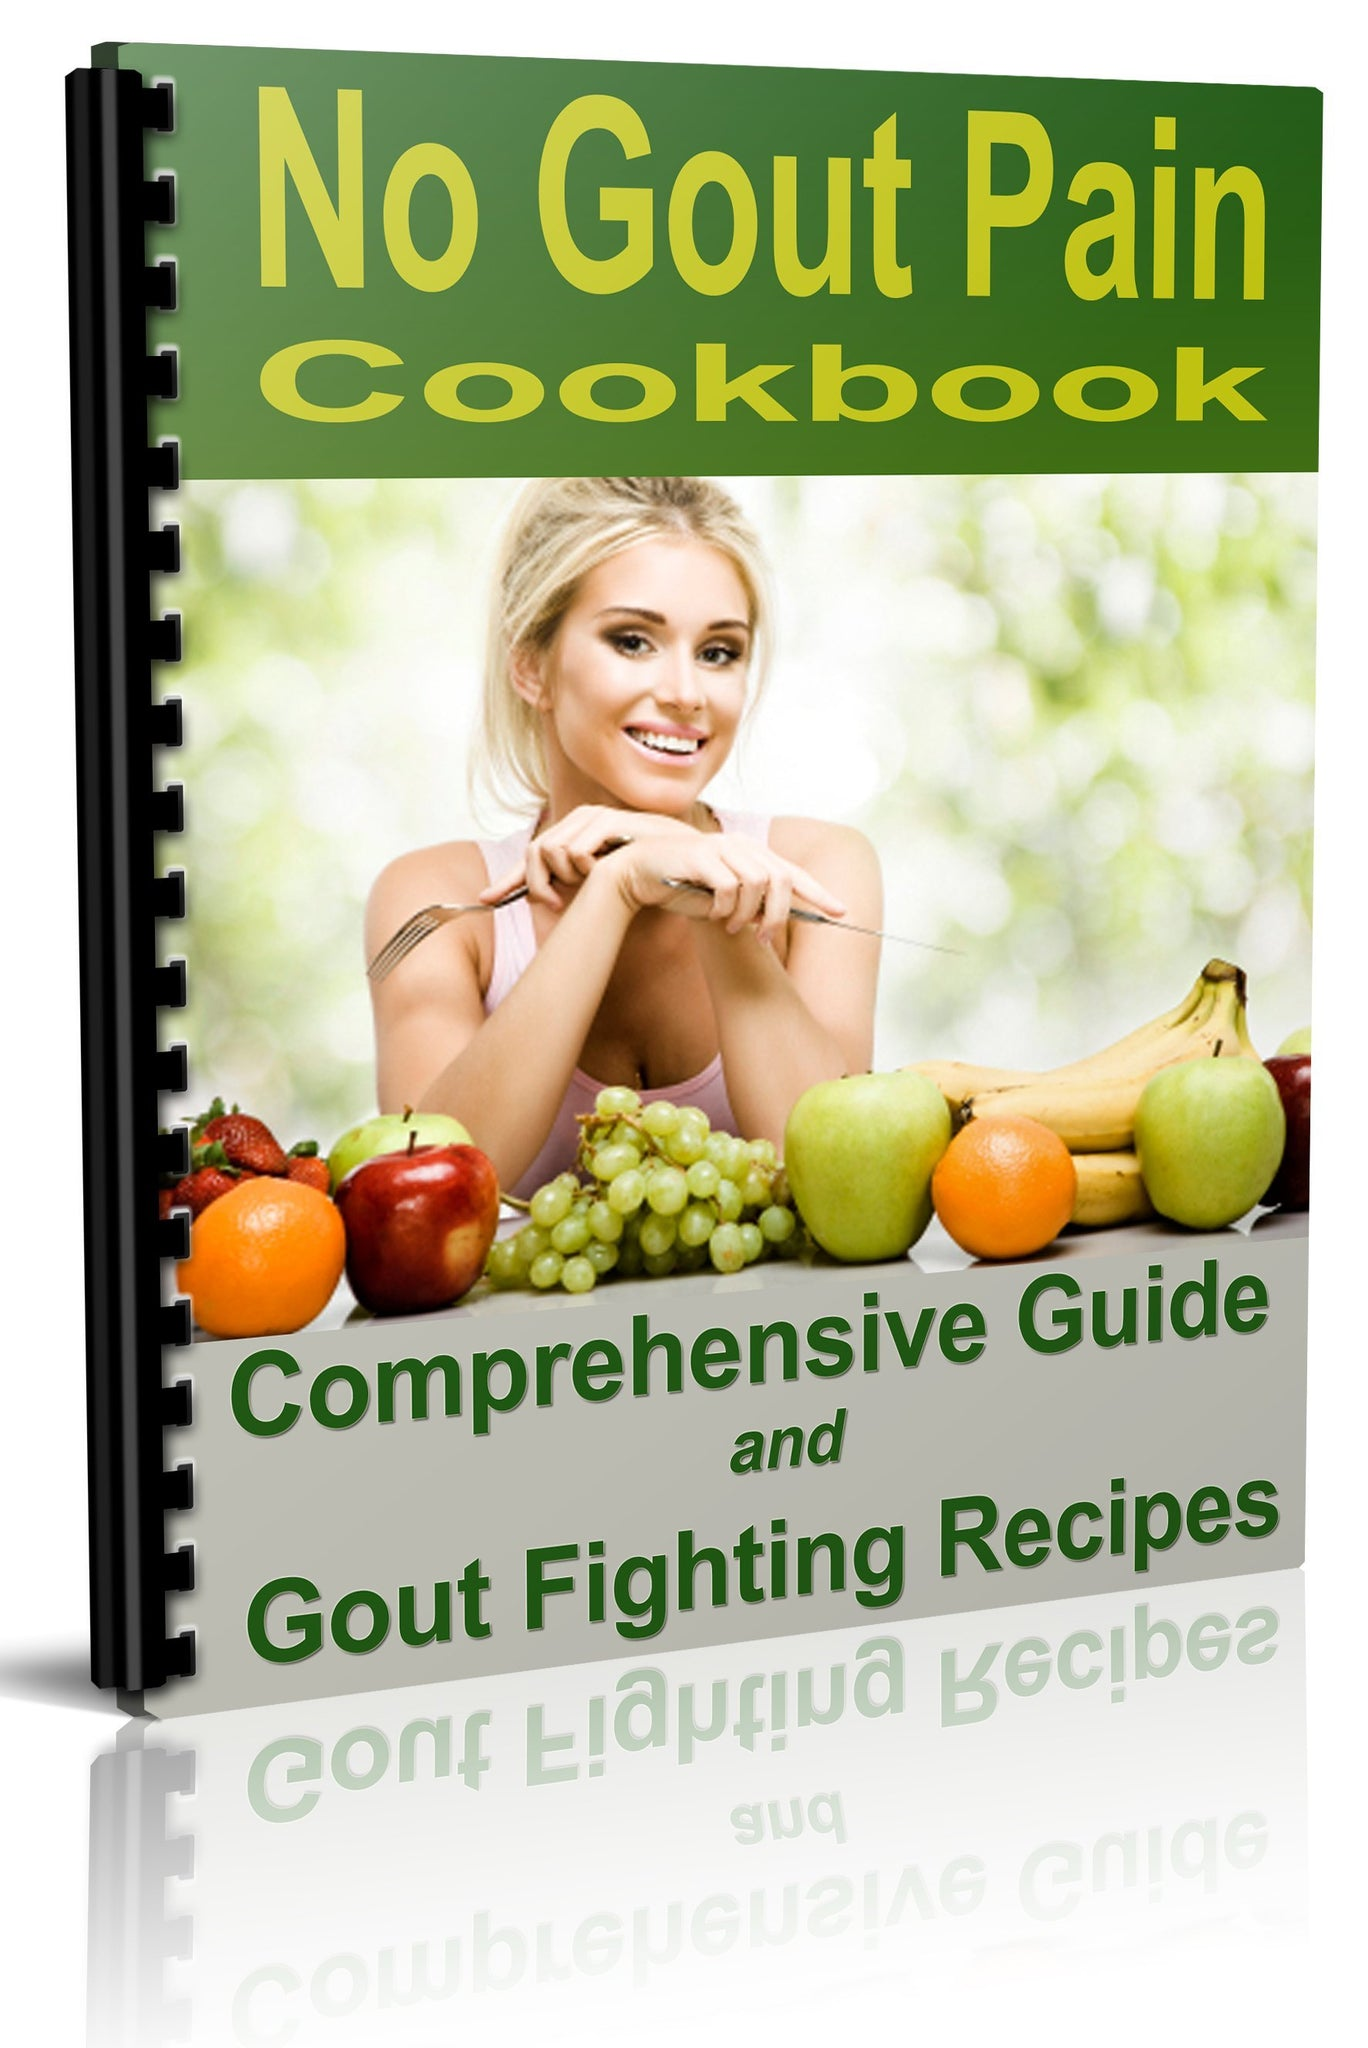 No Gout Pain Cookbook - Printed Version - traversebayfarms